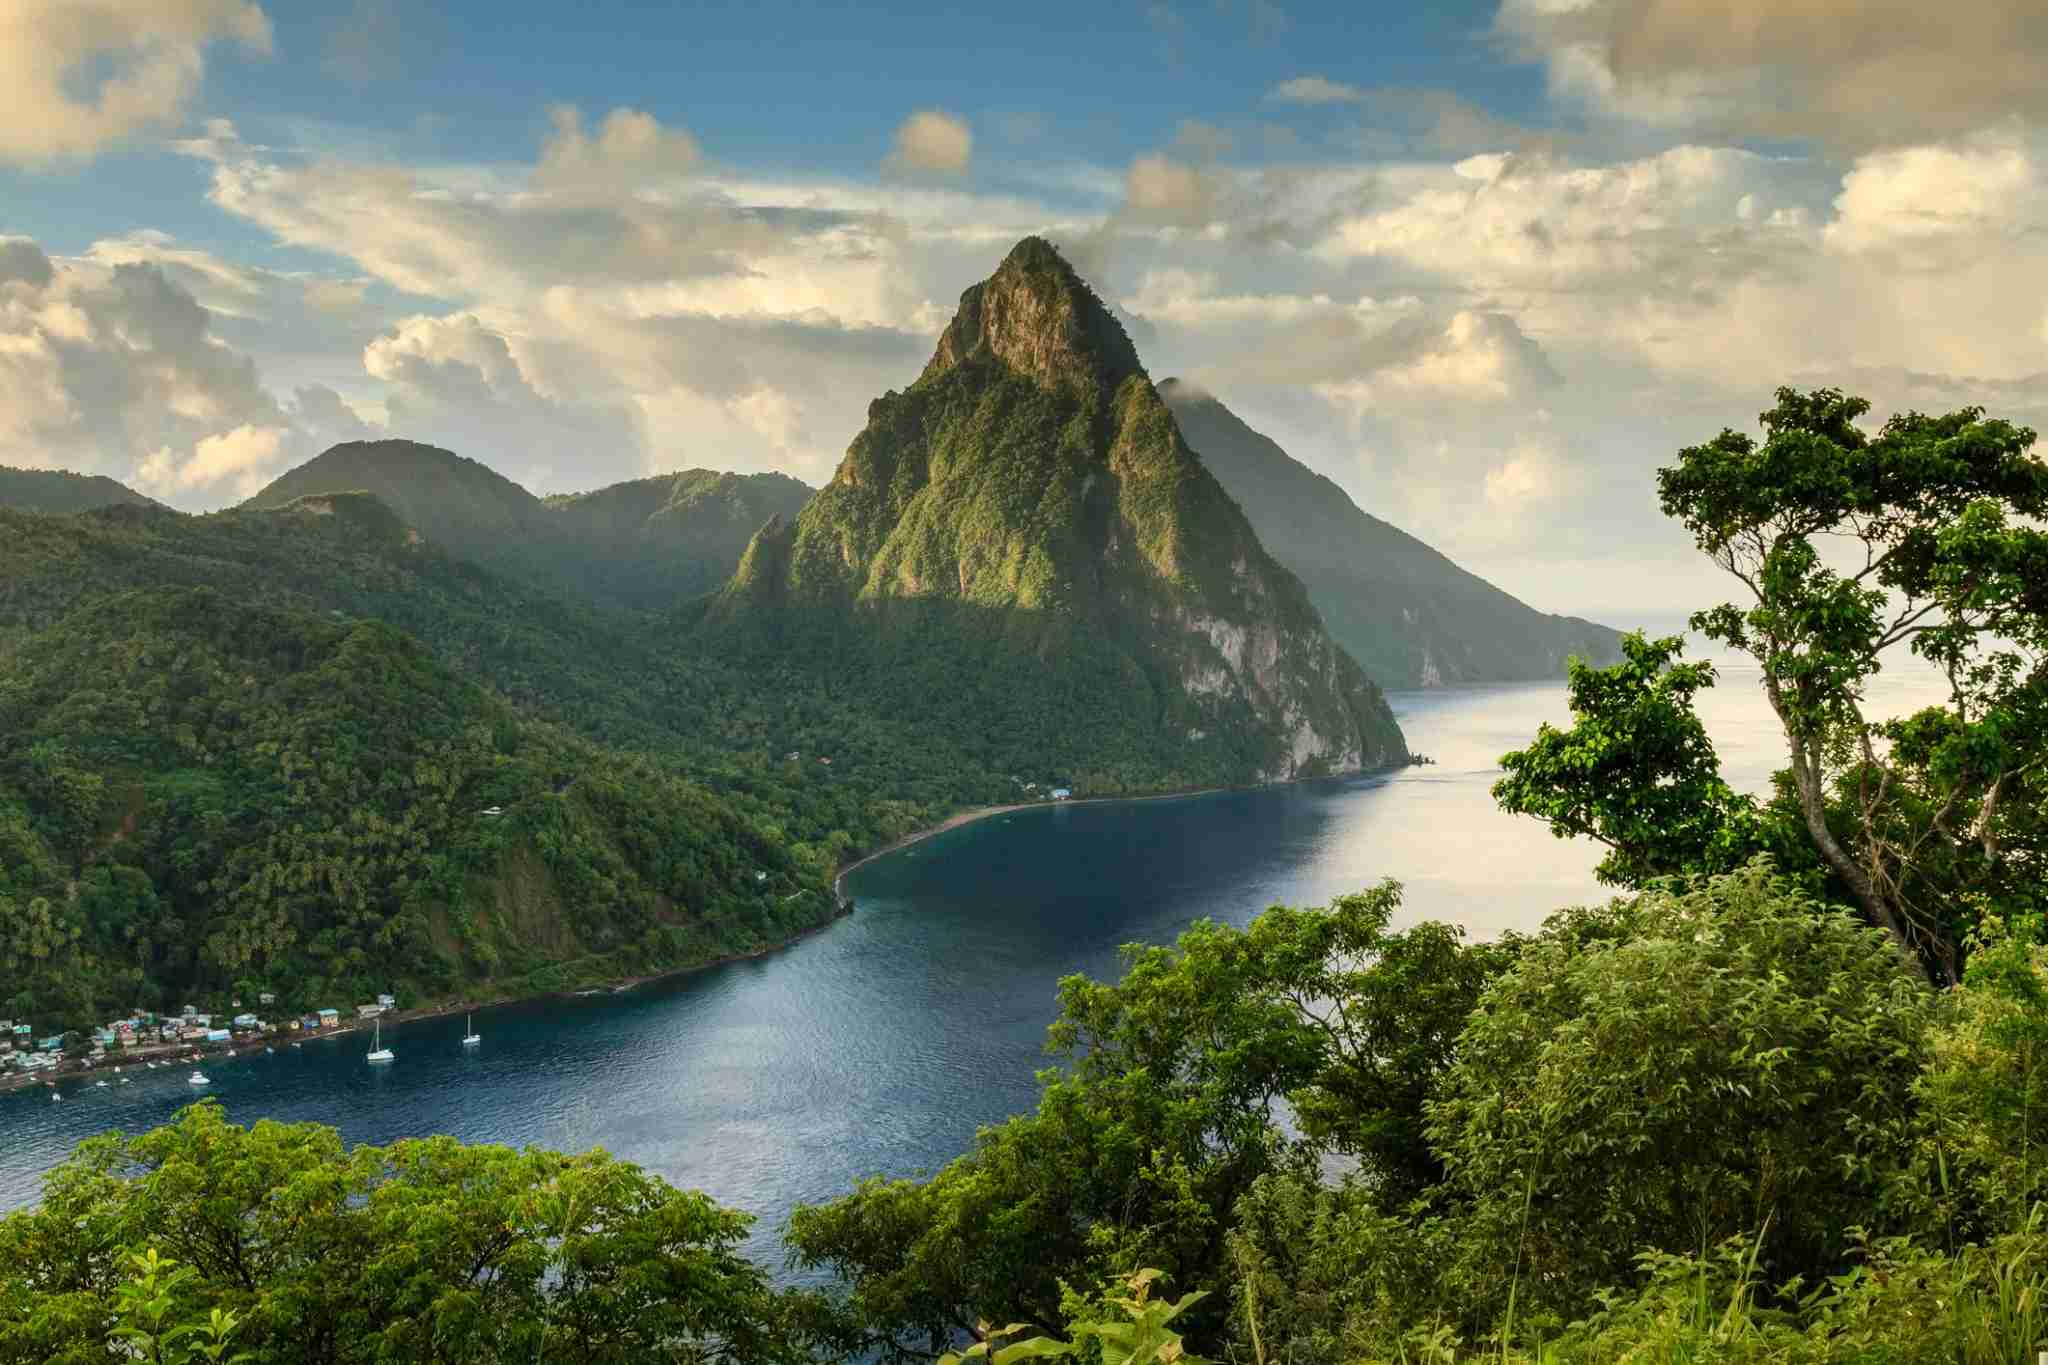 The Pitons on St. Lucia. Image by Paul Baggaley / Getty Images.